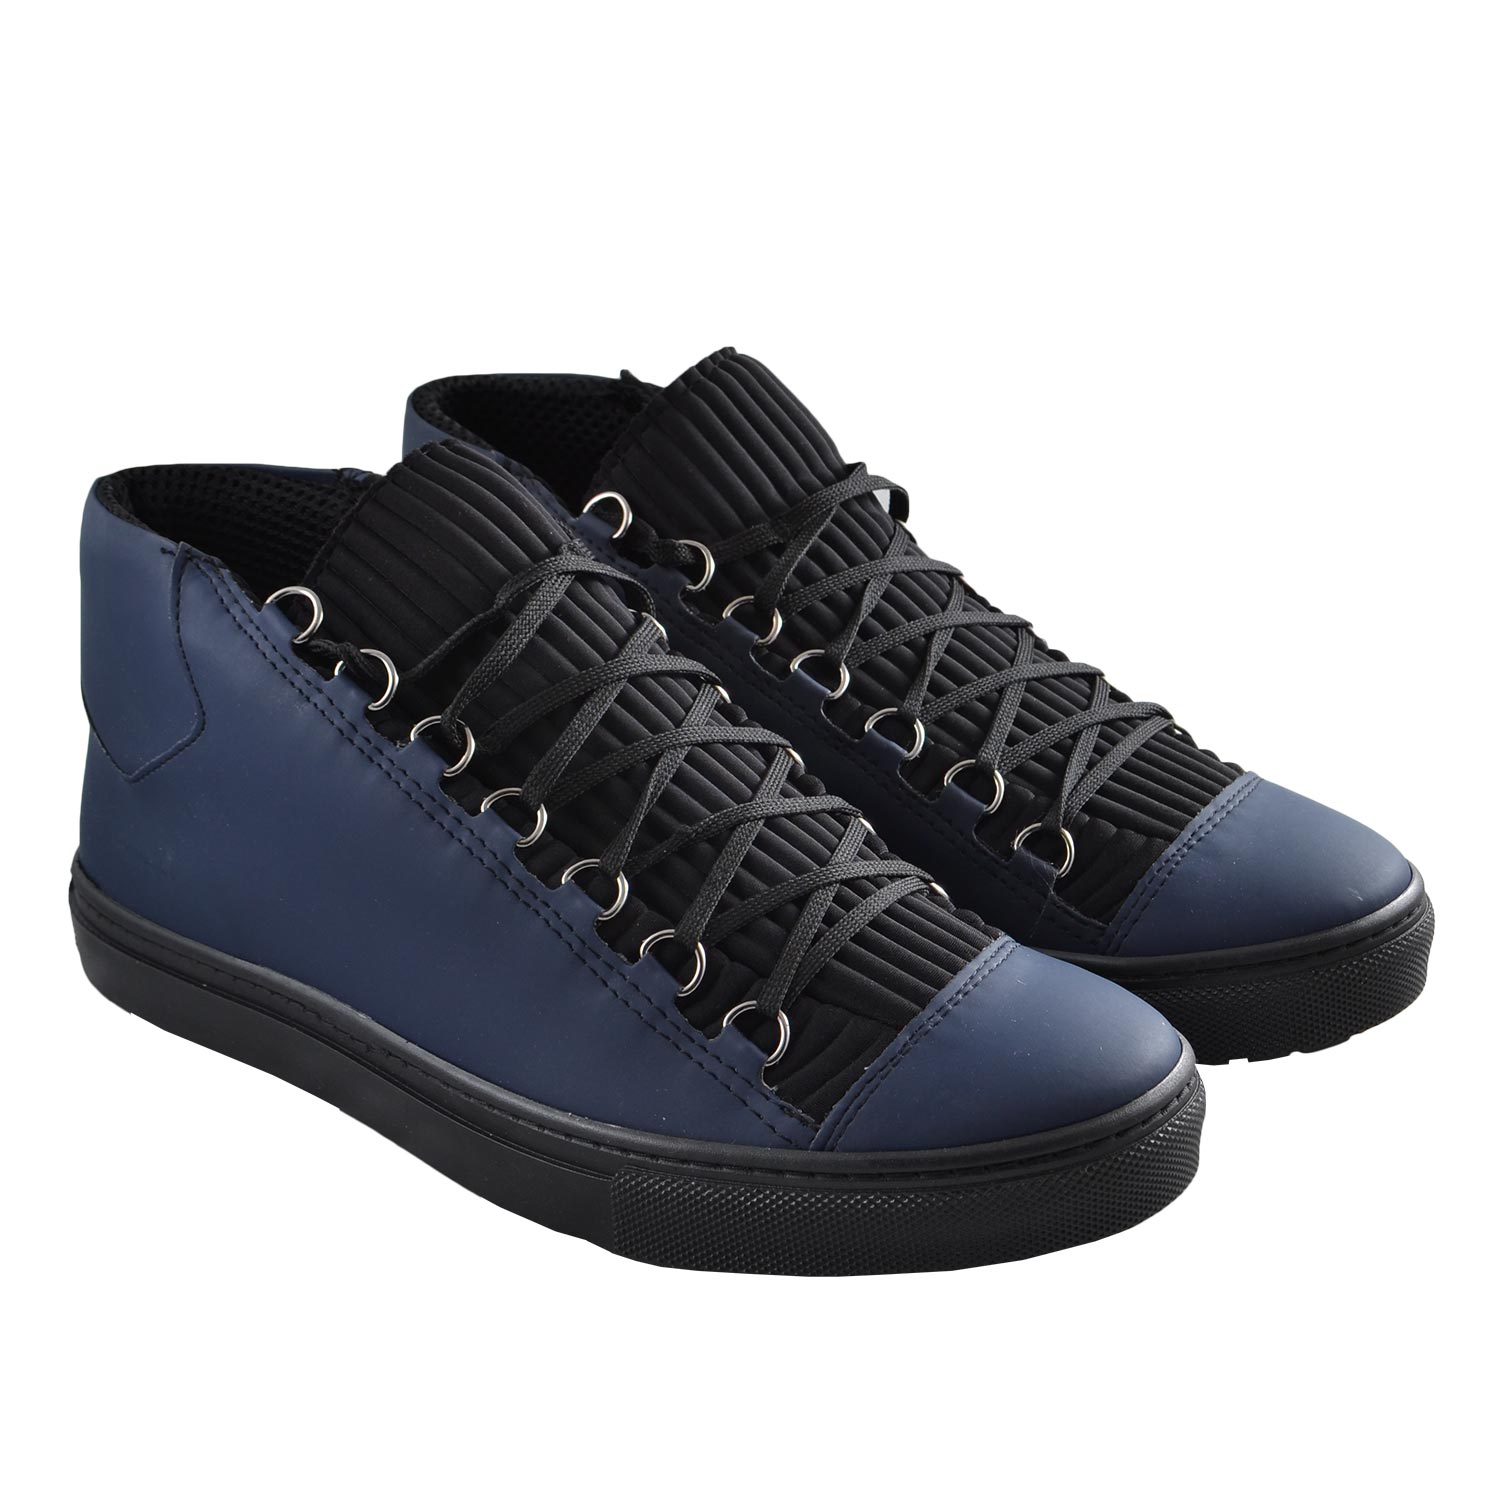 Sneakers Alta Balen in pelle blu uomo sneakers alta Made in Italy | MaluShoes